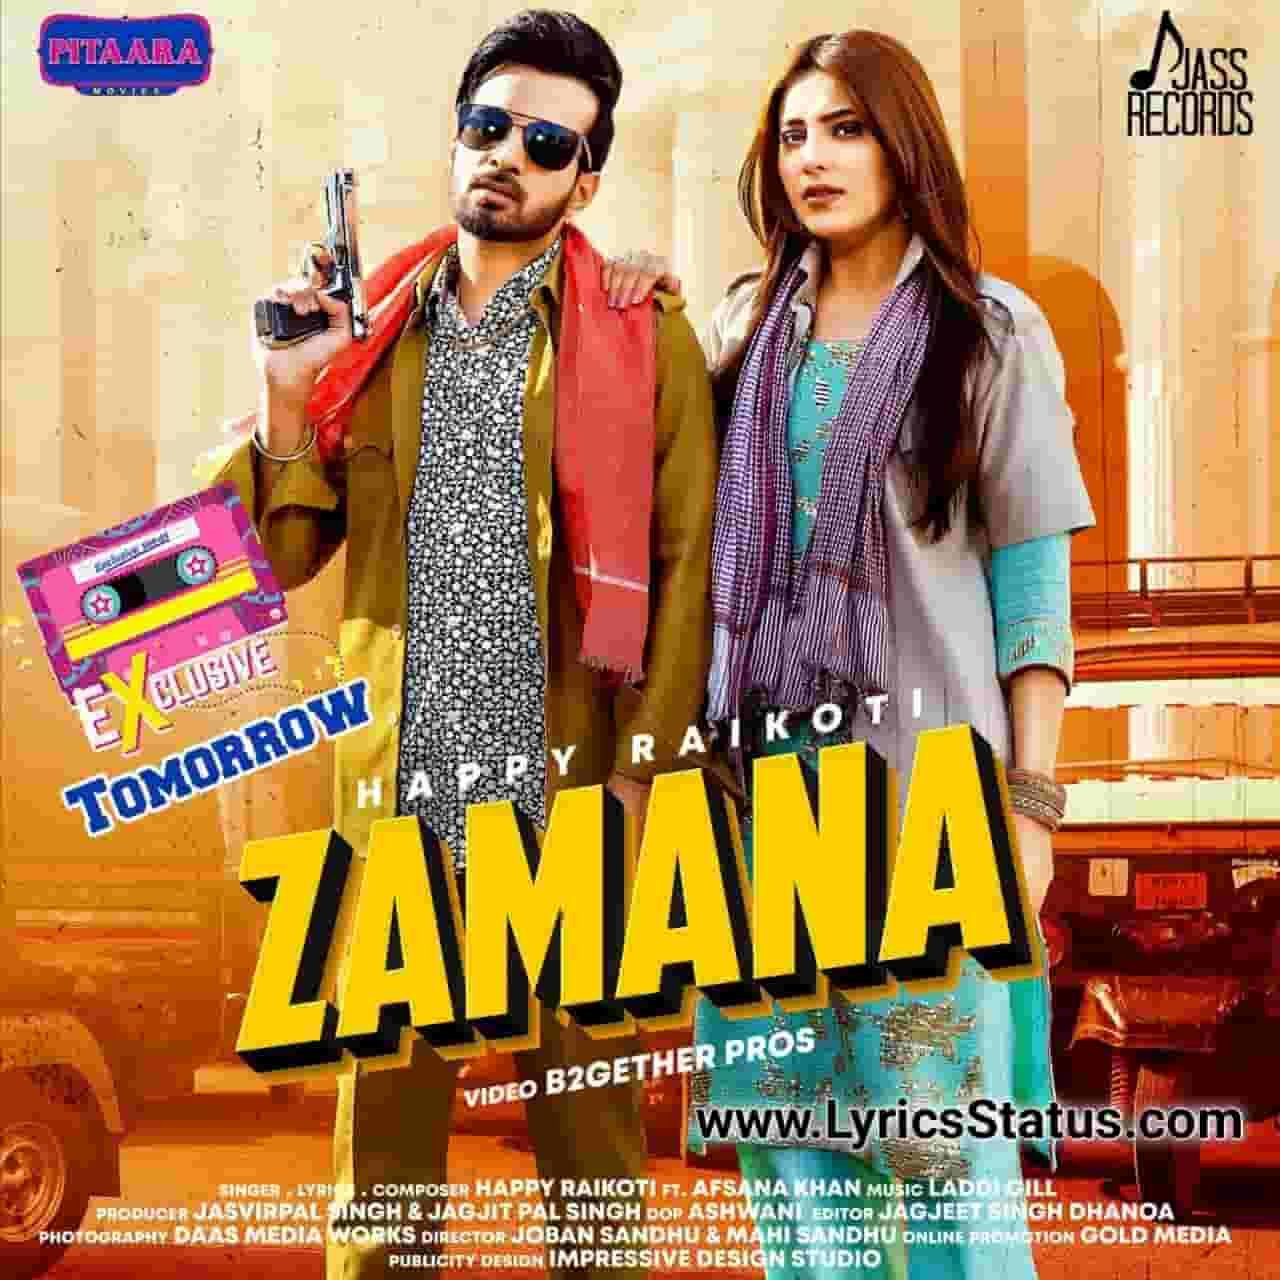 Happy Raikoti new song Zamana Afsana Khan Lyrics status download Jehde hisaab naal zamana chaldae Ove chalna pendae Ve mainu khair ni lagdi